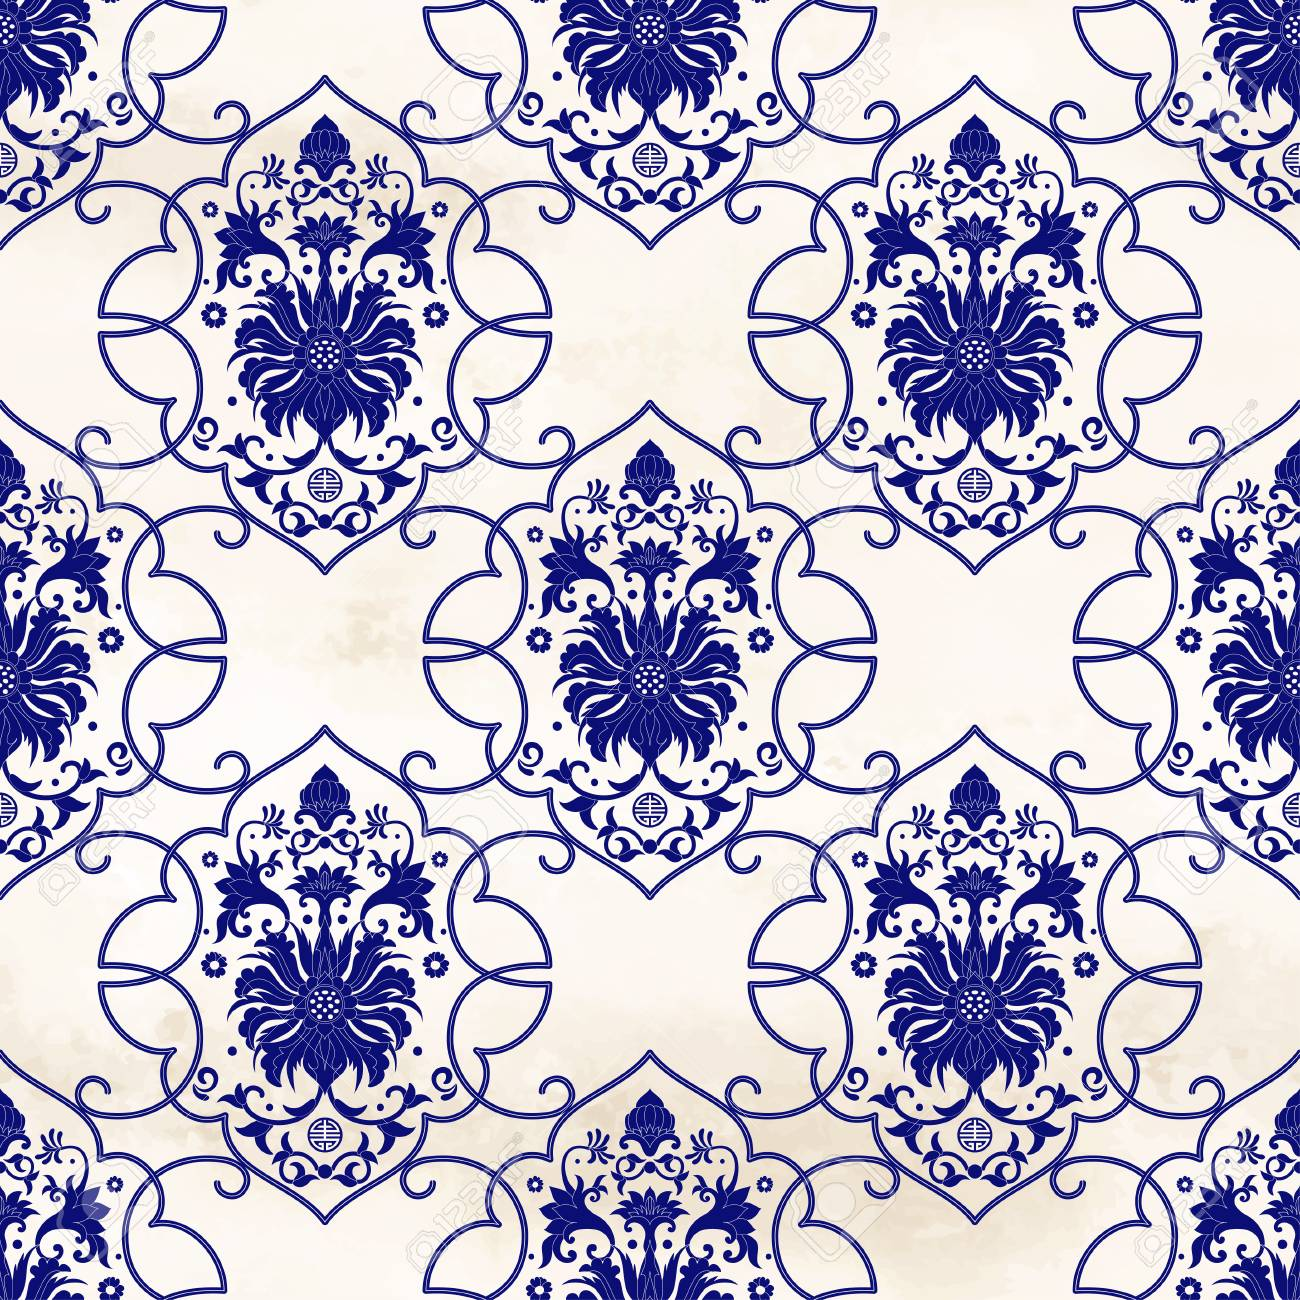 Seamless Vector Background With Curly Frames Around Patterns